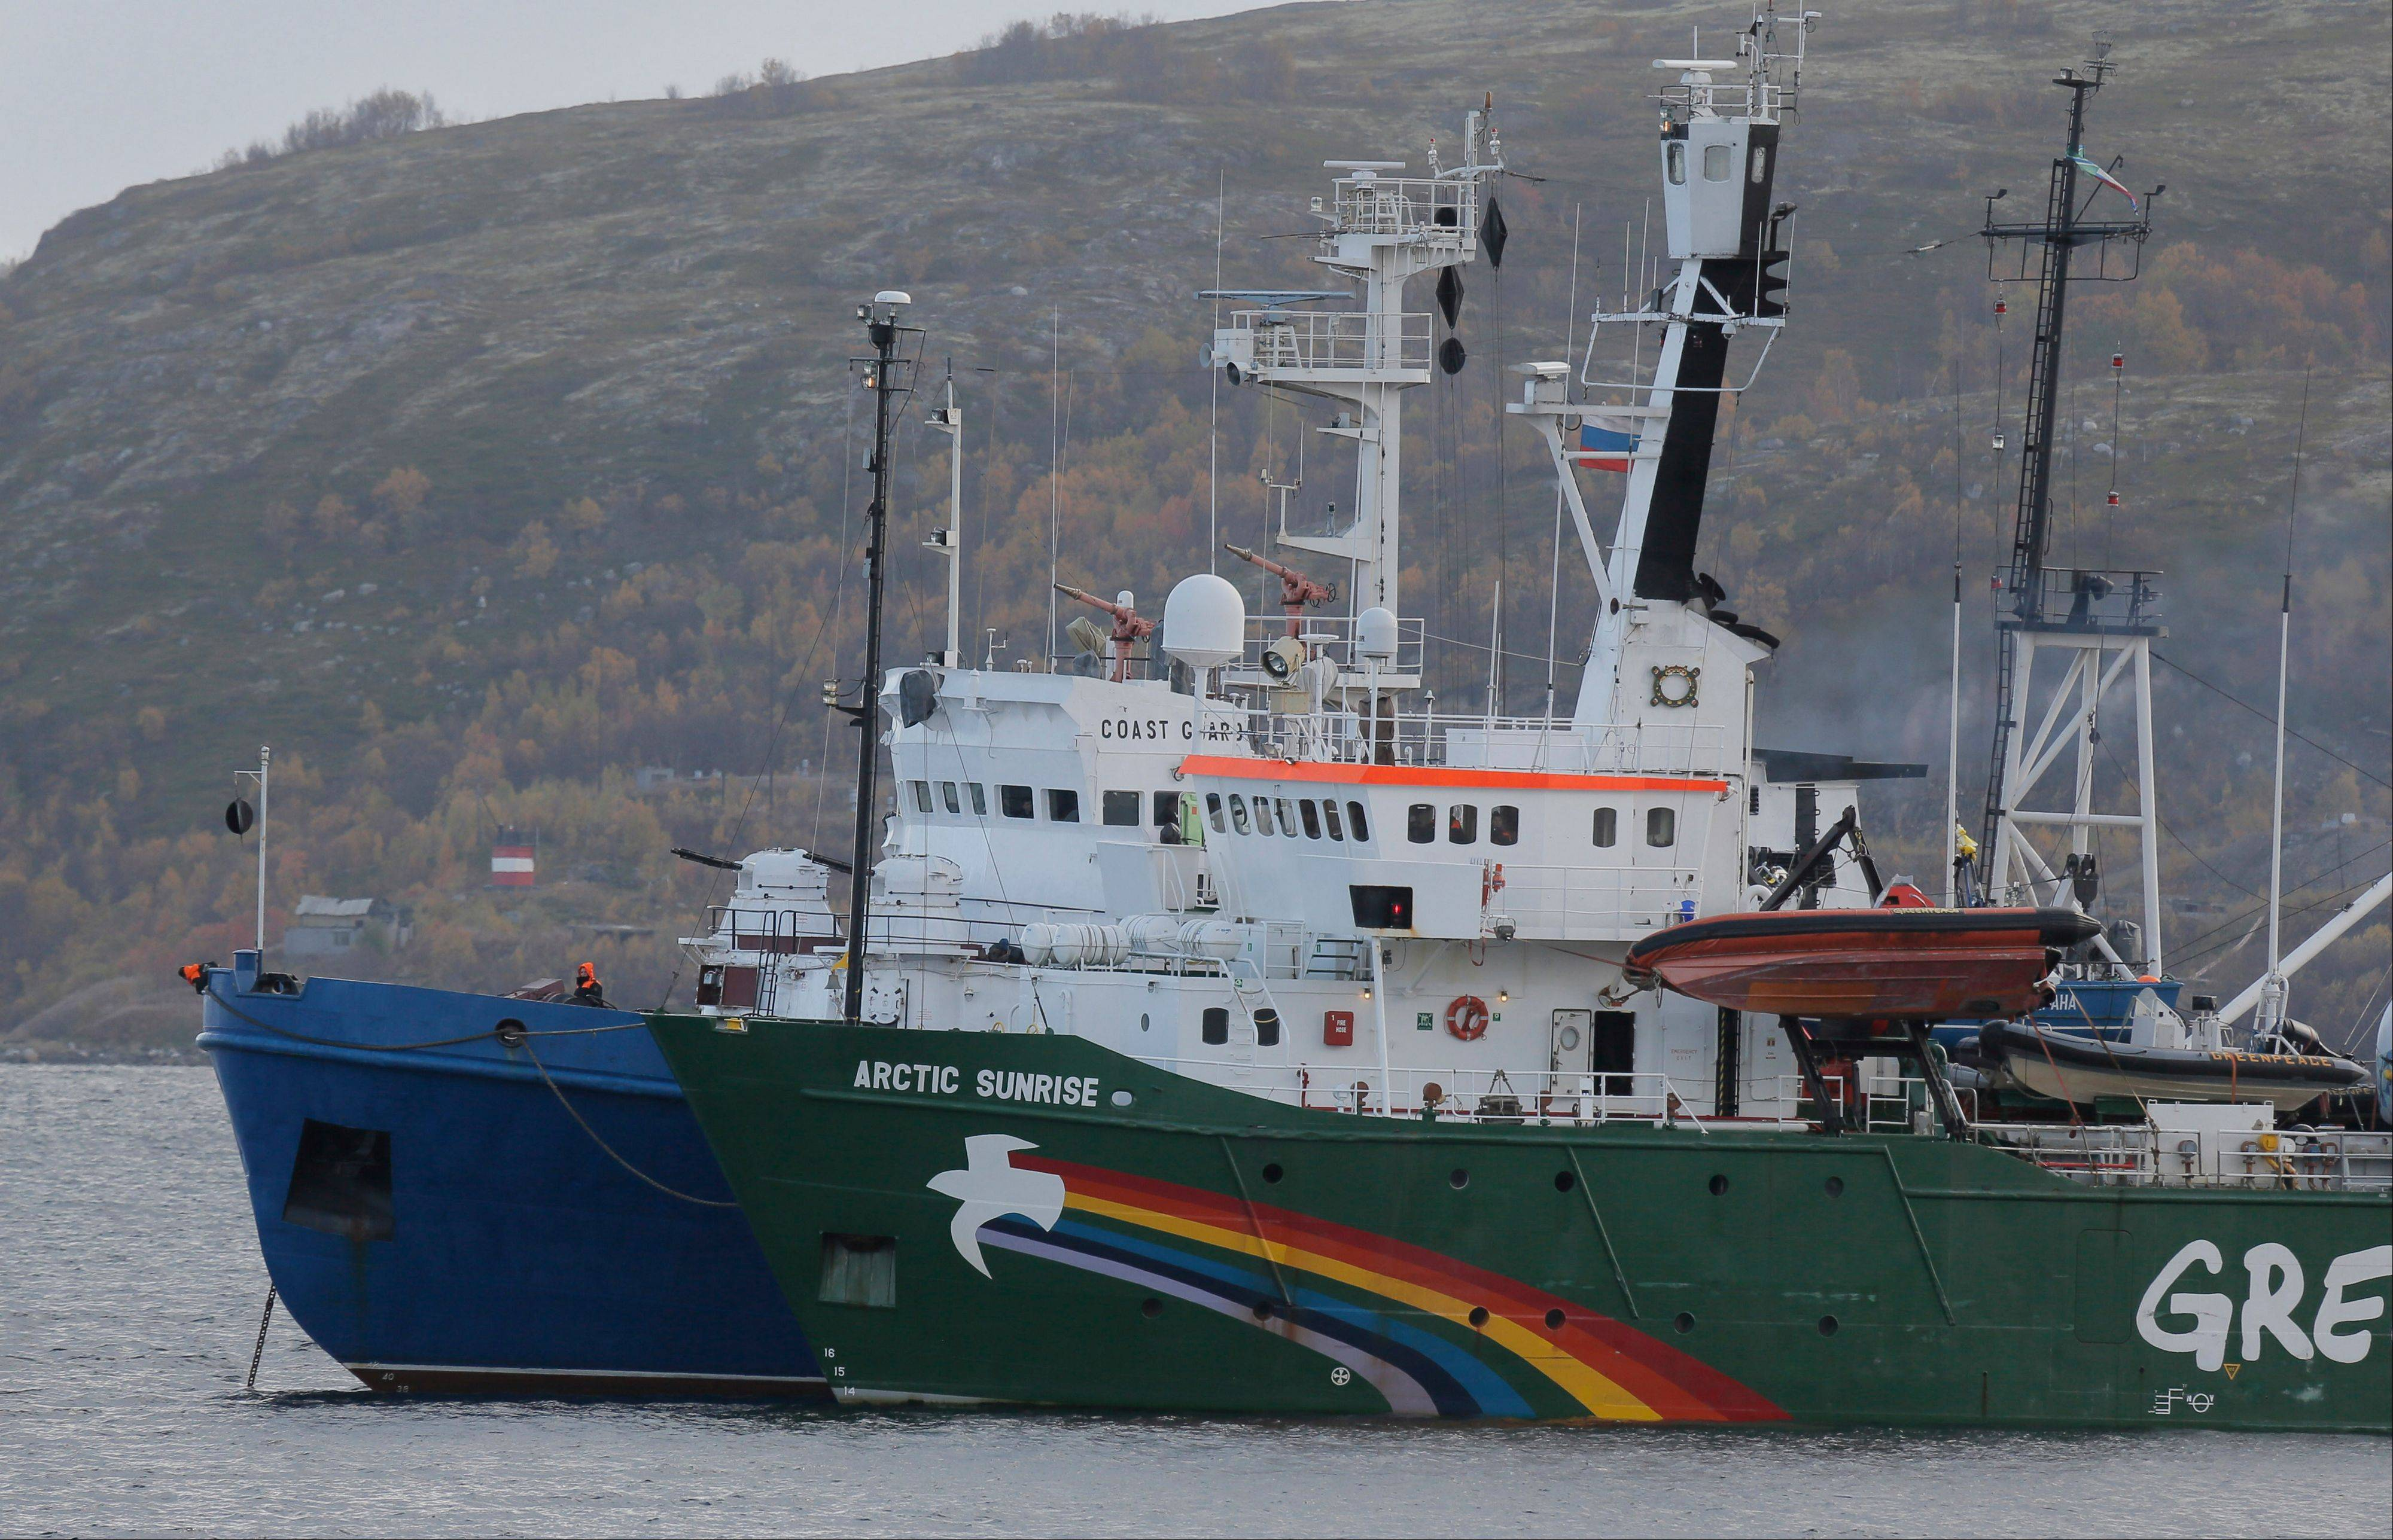 Greenpeace ship �Arctic Sunrise� is escorted by a Russian coast guard boat, in Kola Bay at the military base Severomorsk on the Kola Peninsula in Russia, at dawn Tuesday, Sept. 24, 2013. Russia has filed piracy charges against Greenpeace activists who tried to board an offshore drilling platform in the Arctic owned by state-controlled natural gas company Gazprom.